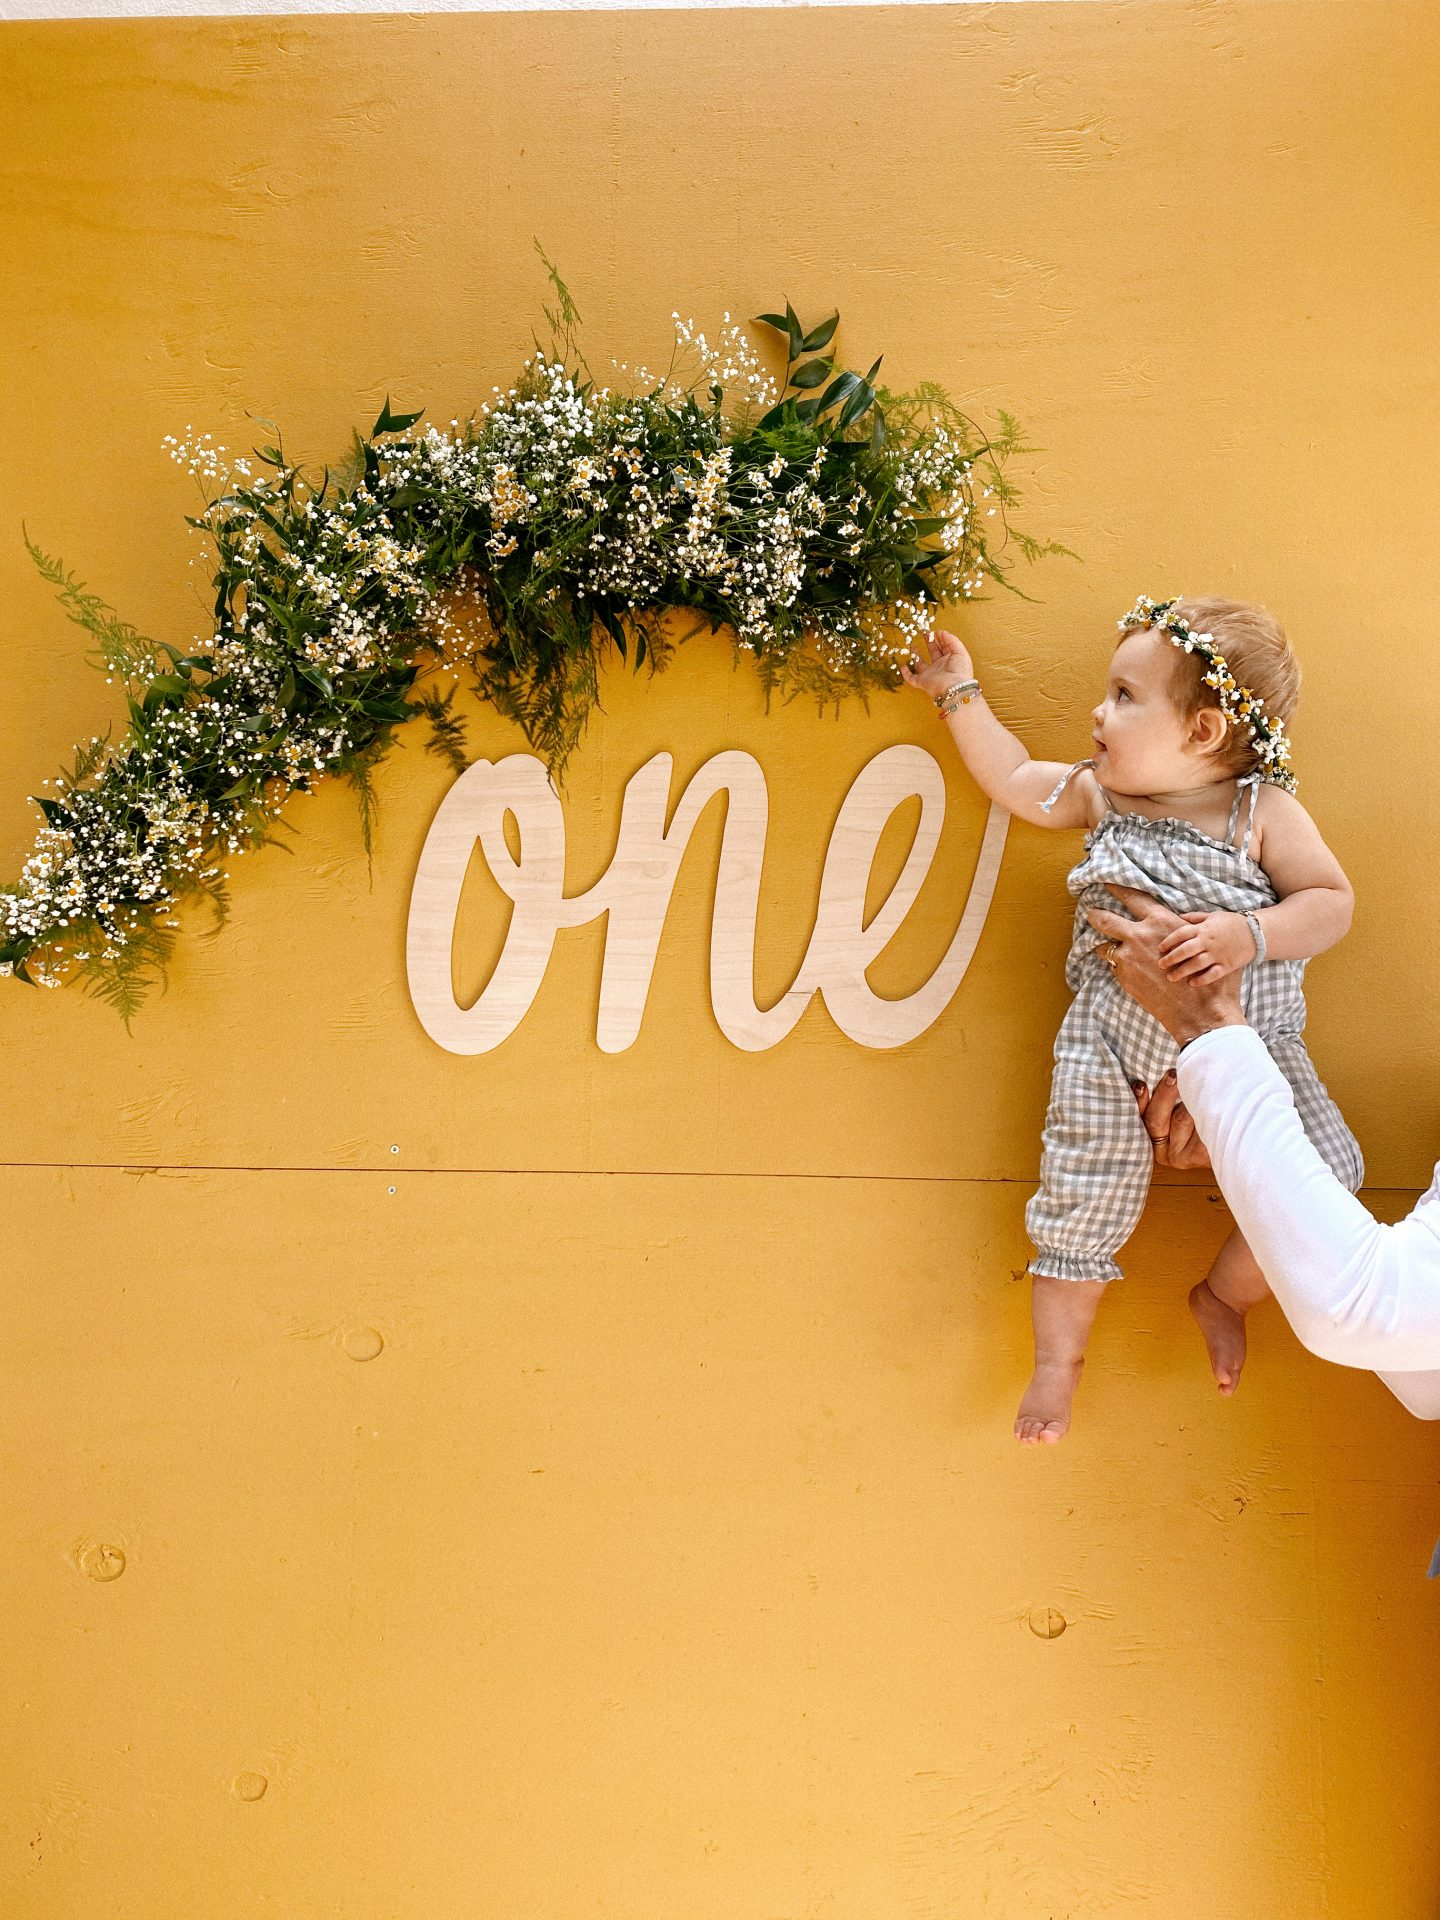 Daisy Theme Party by popular San Diego lifestyle blog, Navy Grace: image of a baby wearing a grey and white gingham romper and a daisy crown while being held next to a wooden 'one' sign, and daisy garland.